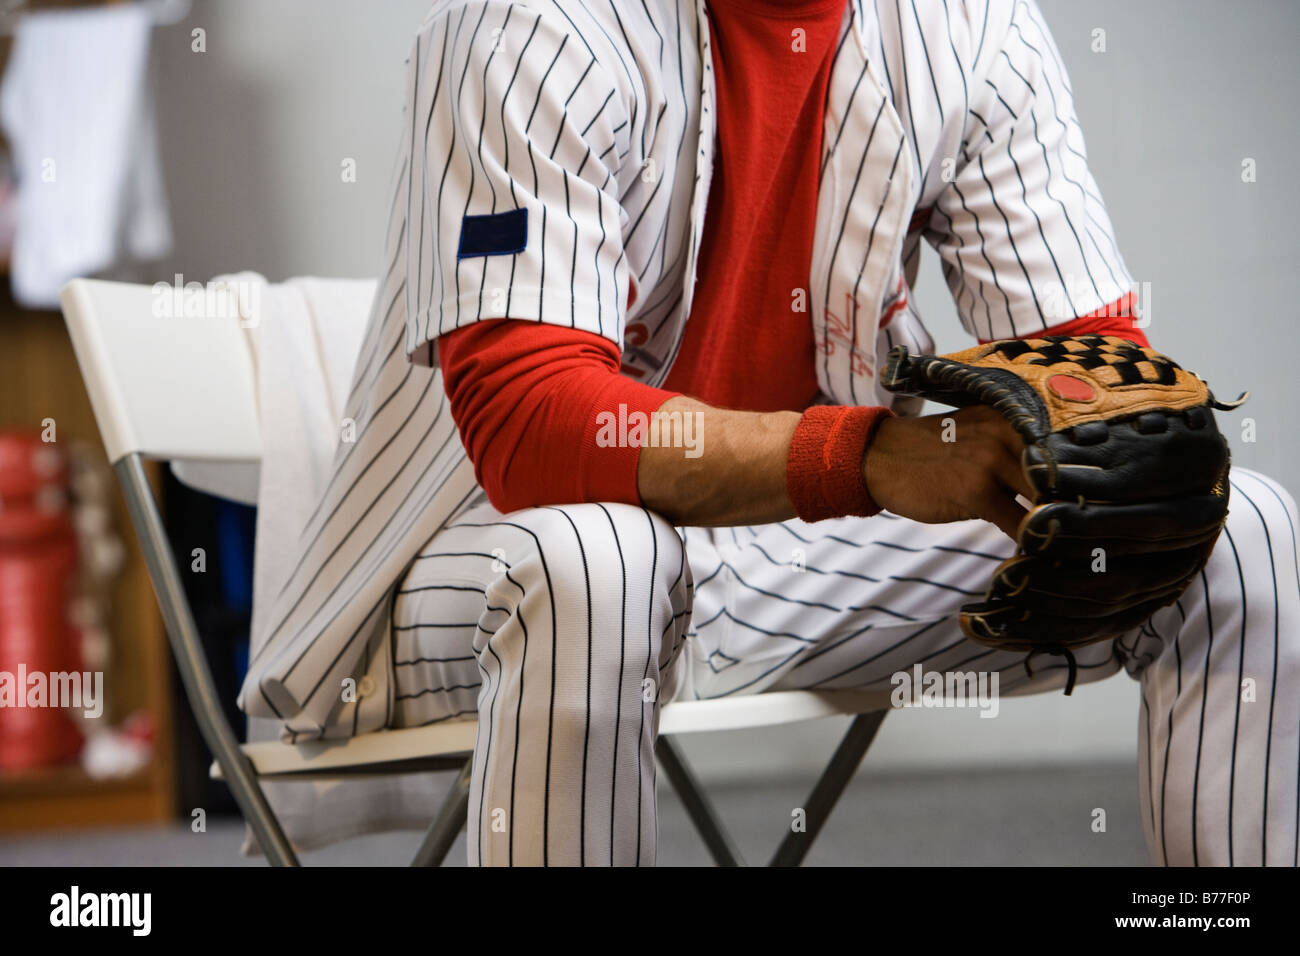 Baseball Player Holding Glove Locker Room